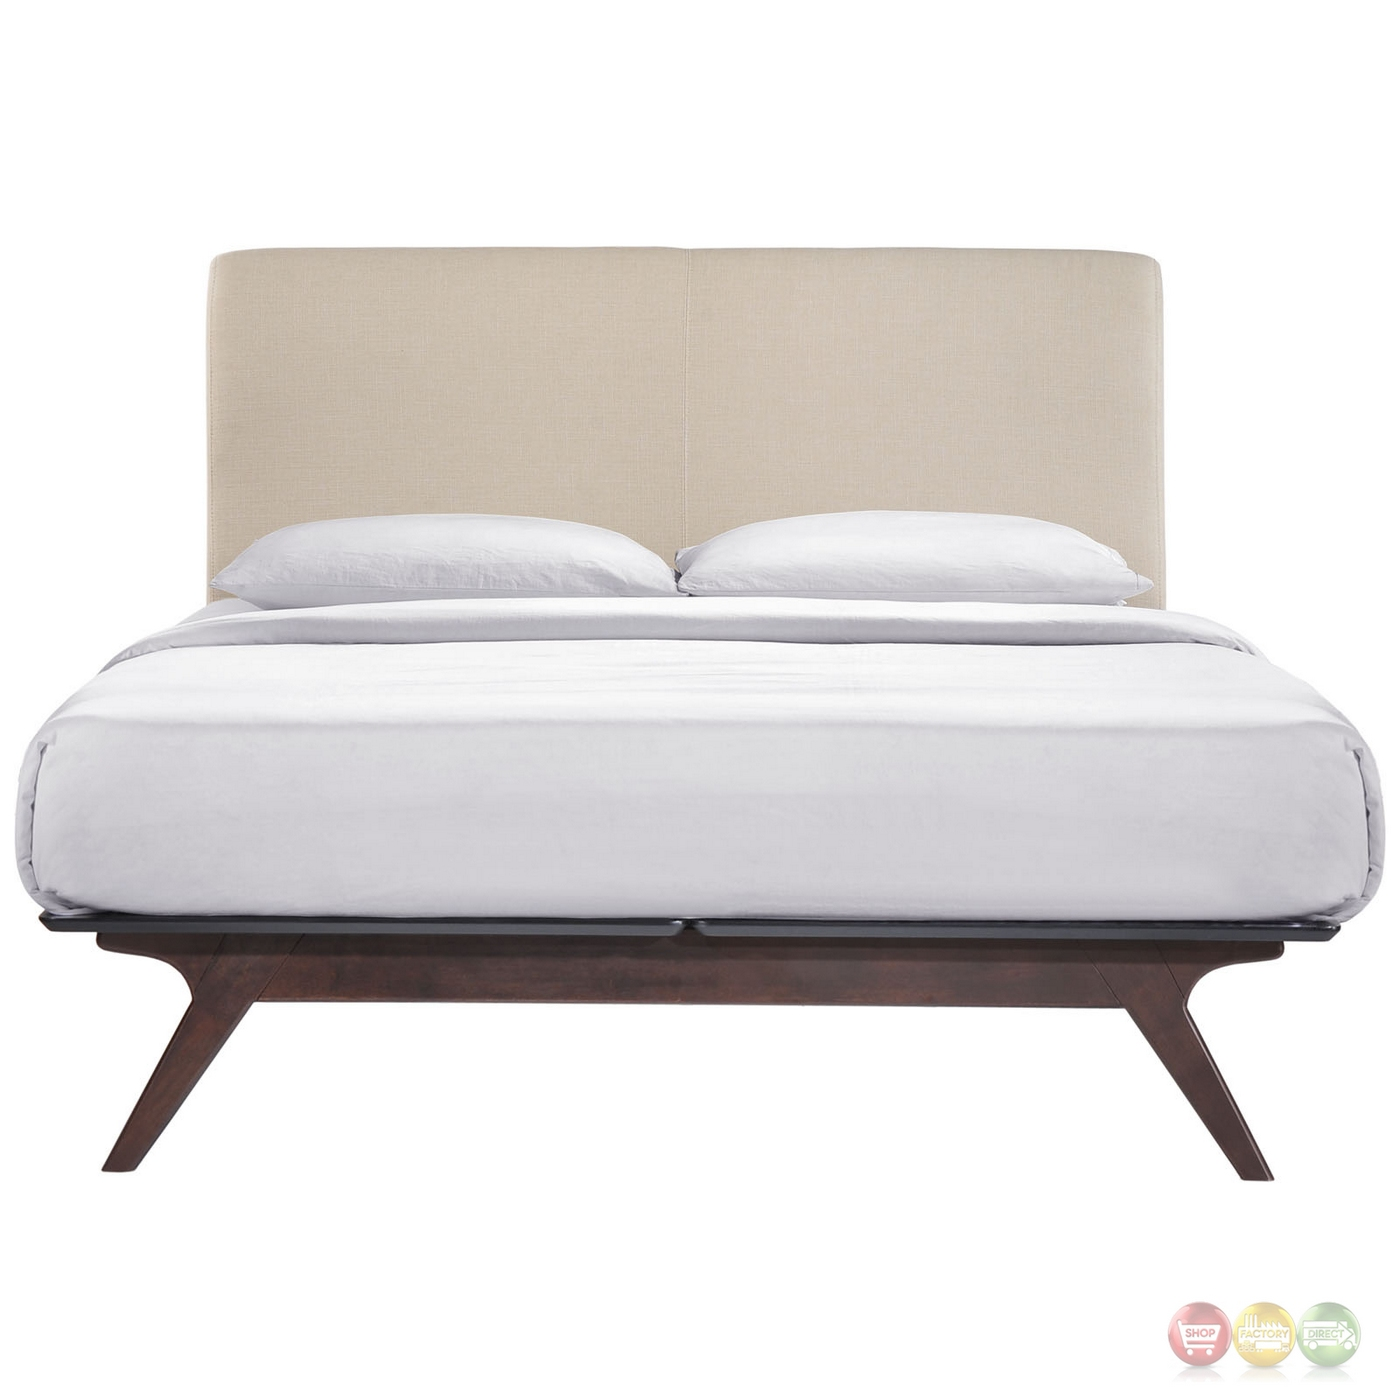 Tracy contemporary upholstered platform king bed Platform king bed